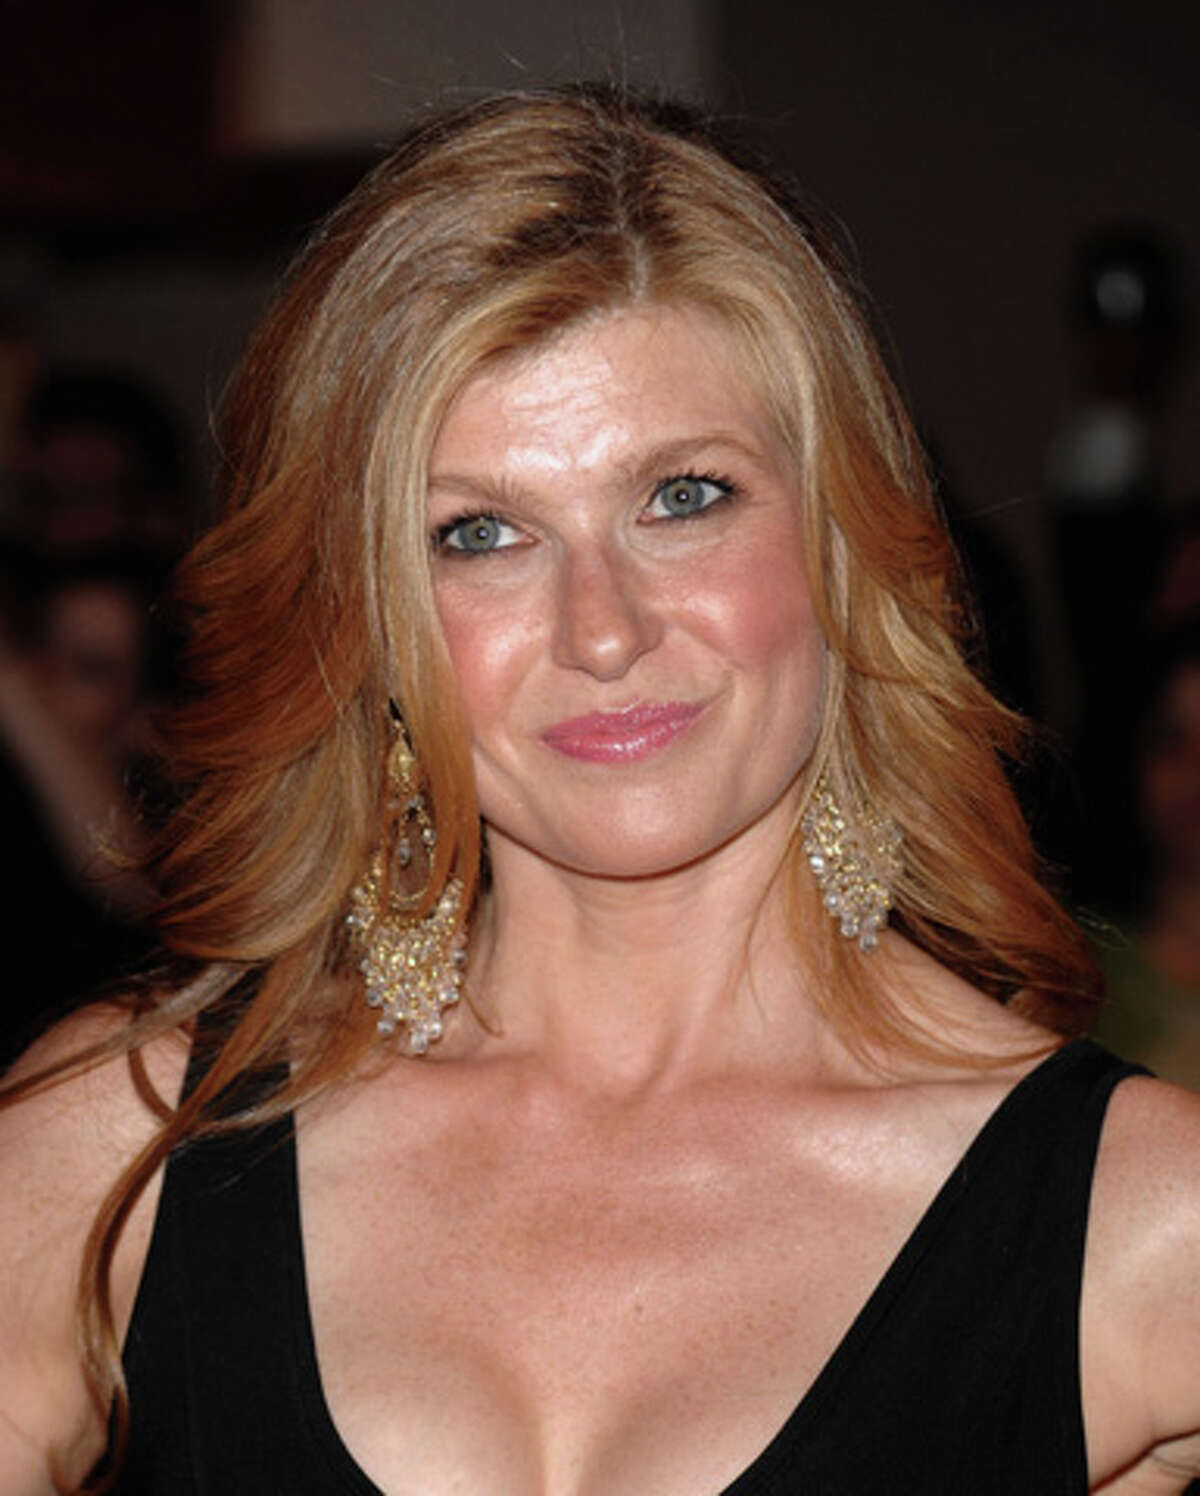 Connie Britton is nominated for best actress in a drama series for her role in